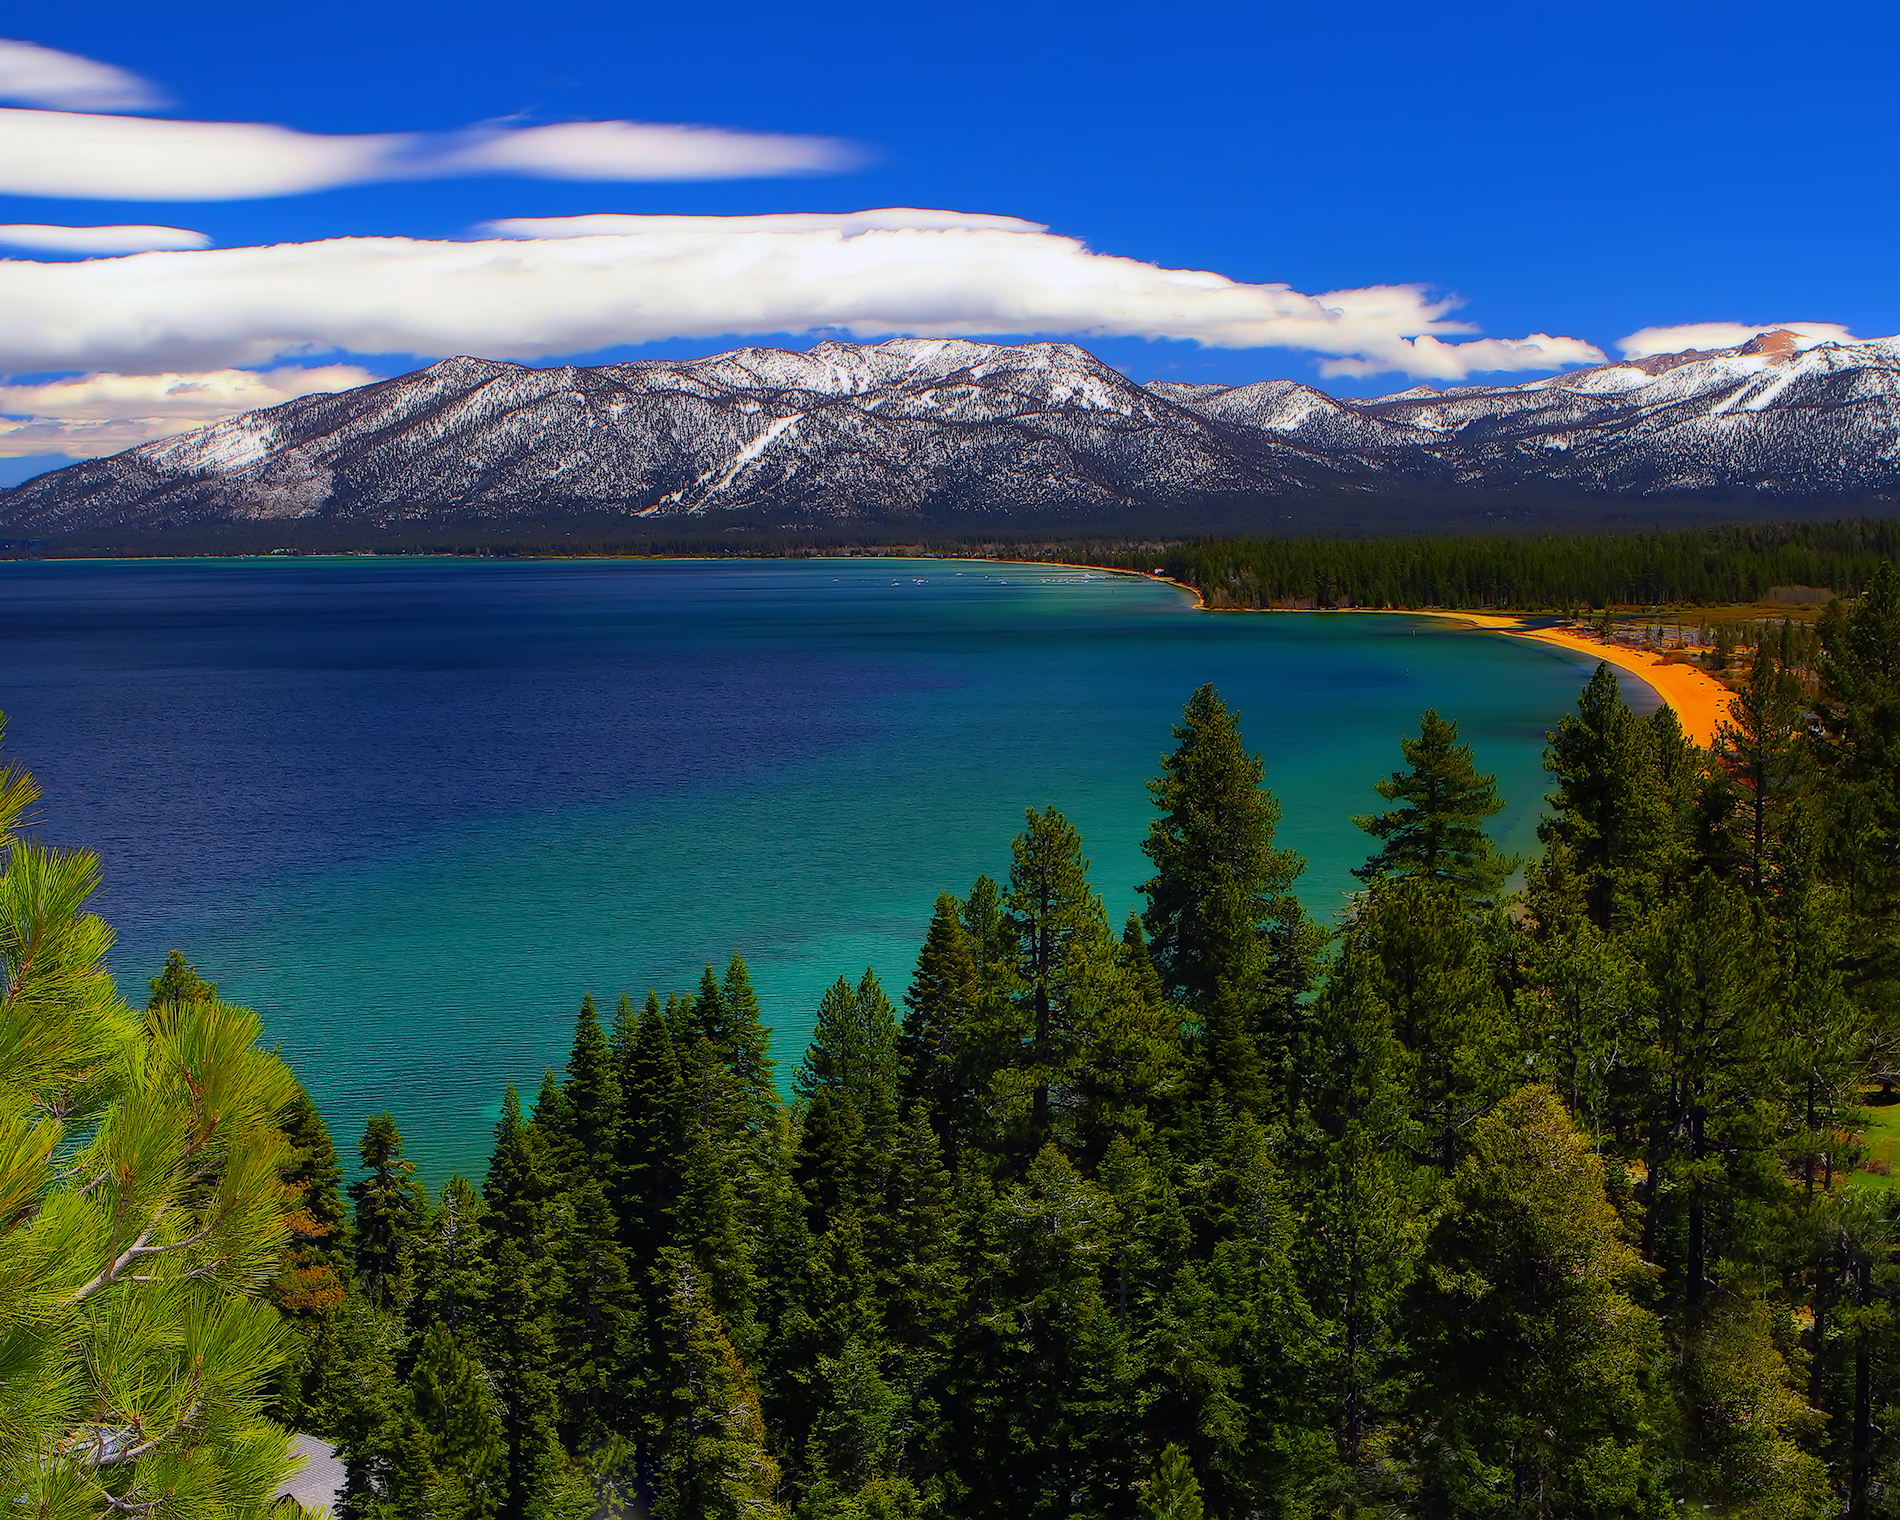 lake-tahoe-at-its-finest.jpg